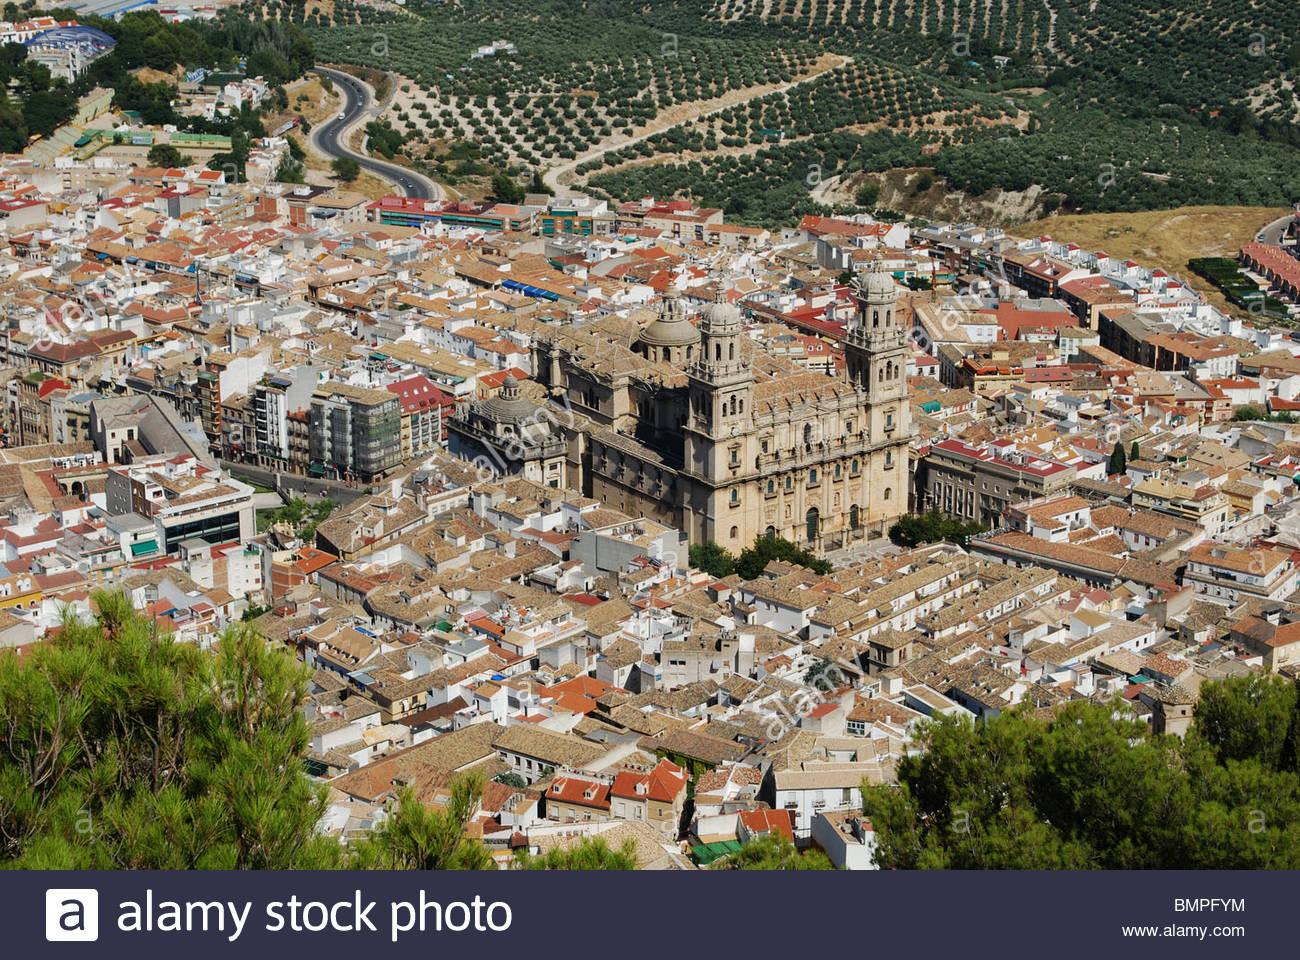 Cathedral with views over the surrounding city rooftops, Jaen, Jaen Province, Andalucia, Spain, Western Europe. - Stock Image